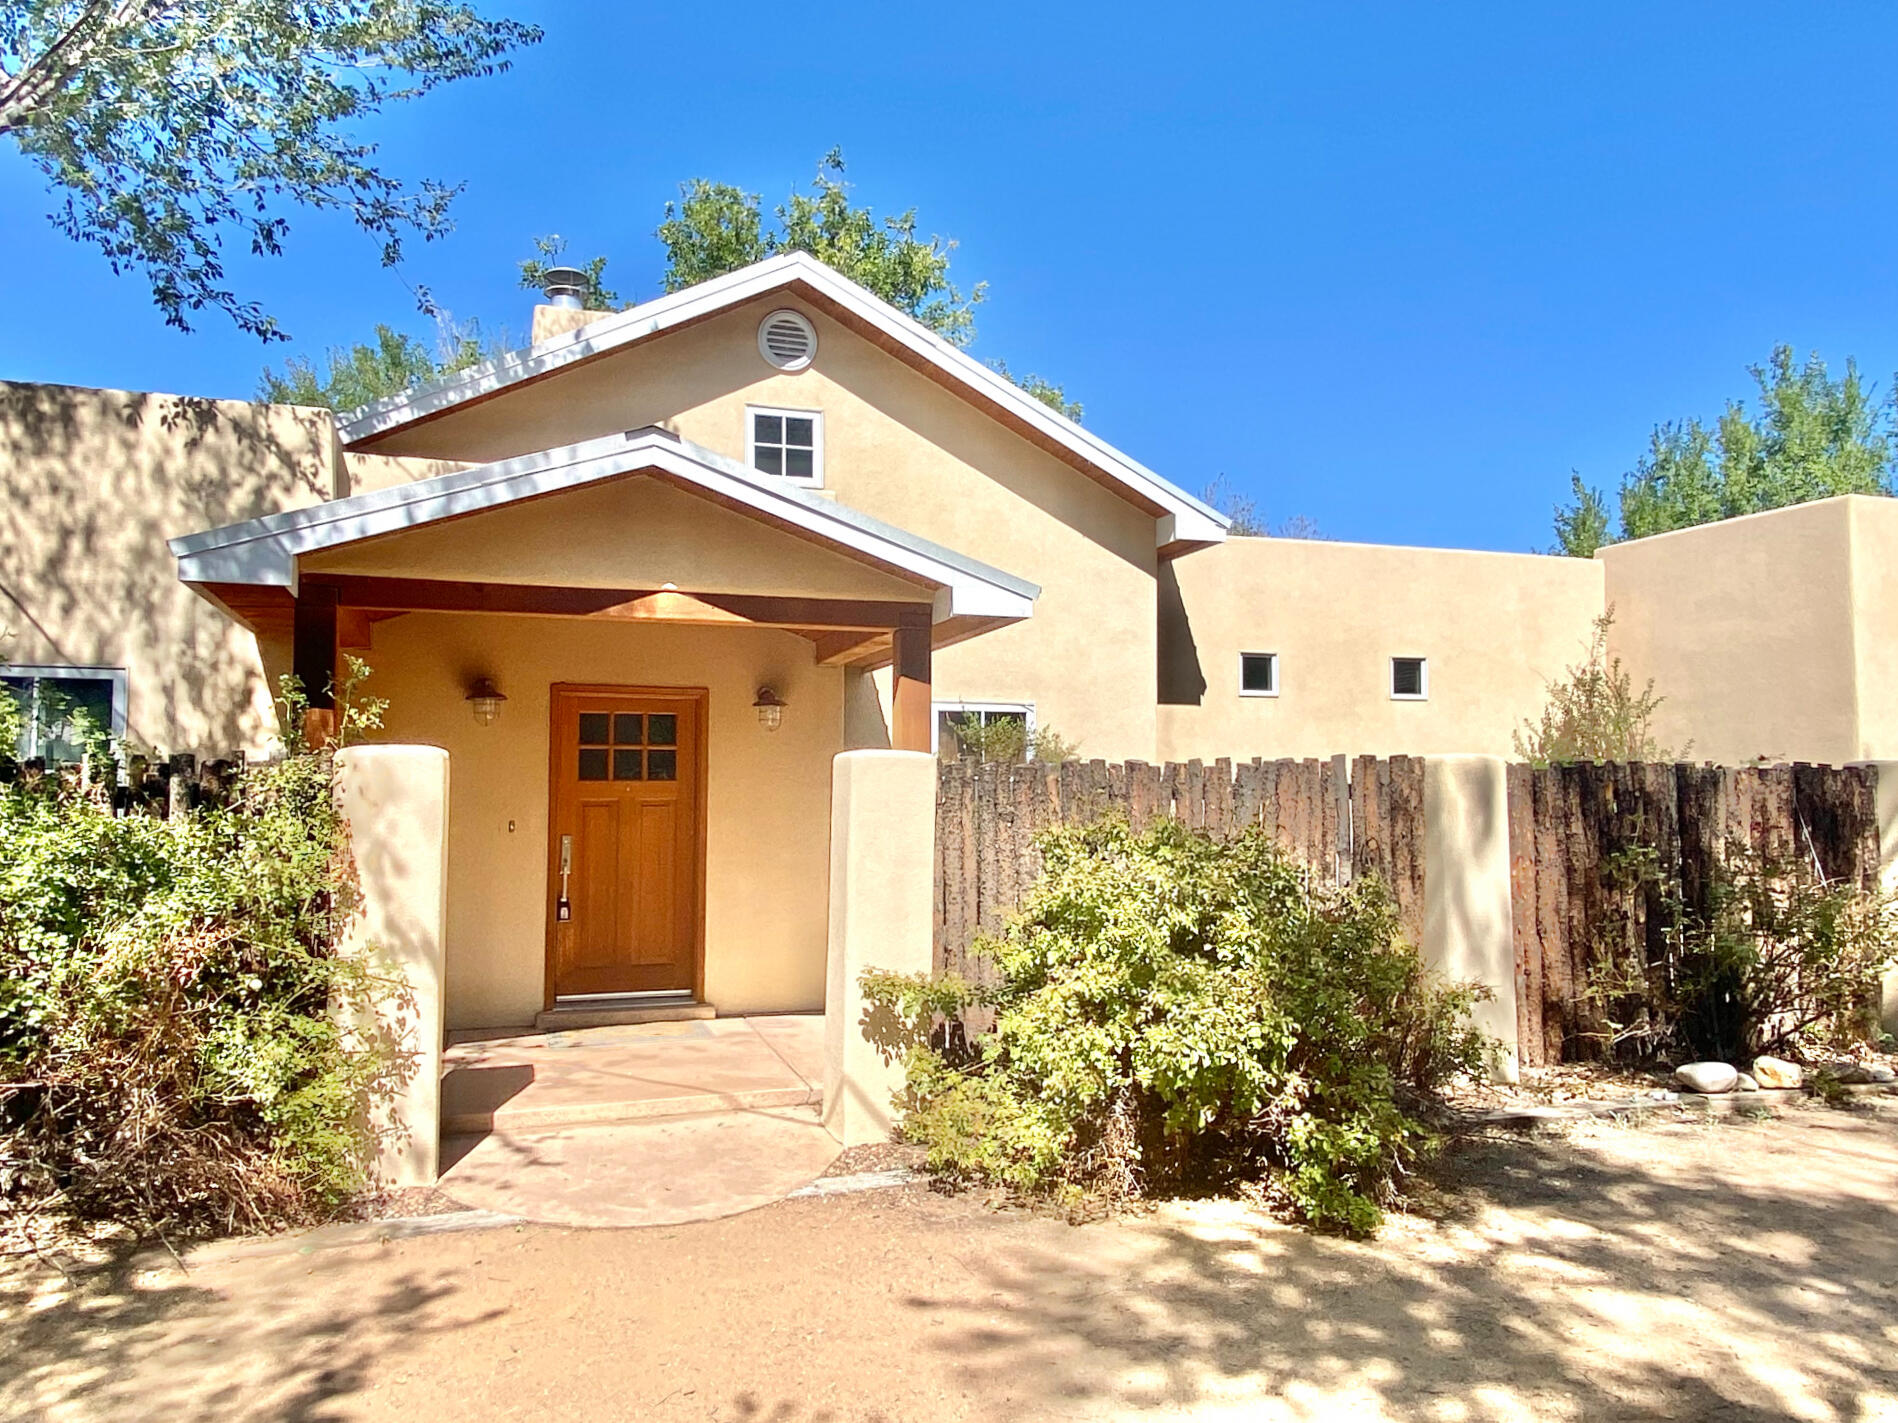 Nestled on a 1/2 AC in the desirable N. Valley, this quaint 3 BR/2 BA home is filled with happy hues, vibrant colors, tall ceilings, concrete floors and large FP, adding to the contemporary flair. The open plan flows into the living, dining and galley kitchen, featuring stainless appliances, multi-colored cabinets, Silestone countertops, and pantry.  Laundry w/full-size washer/dryer and storage closet lead to the expanded, heated 2-Car garage. Enjoy the fully-fenced gated yard with lots of parking, large storage shed, and secluded courtyards surrounded by coyote/cedar fencing with rock water feature. Experience serenity in the N. Valley while close to outdoor activities, walking/bike trails, open space, Rio Grande, shopping, restaurants, grocery stores, malls, I-25 and Balloon Fiesta Park